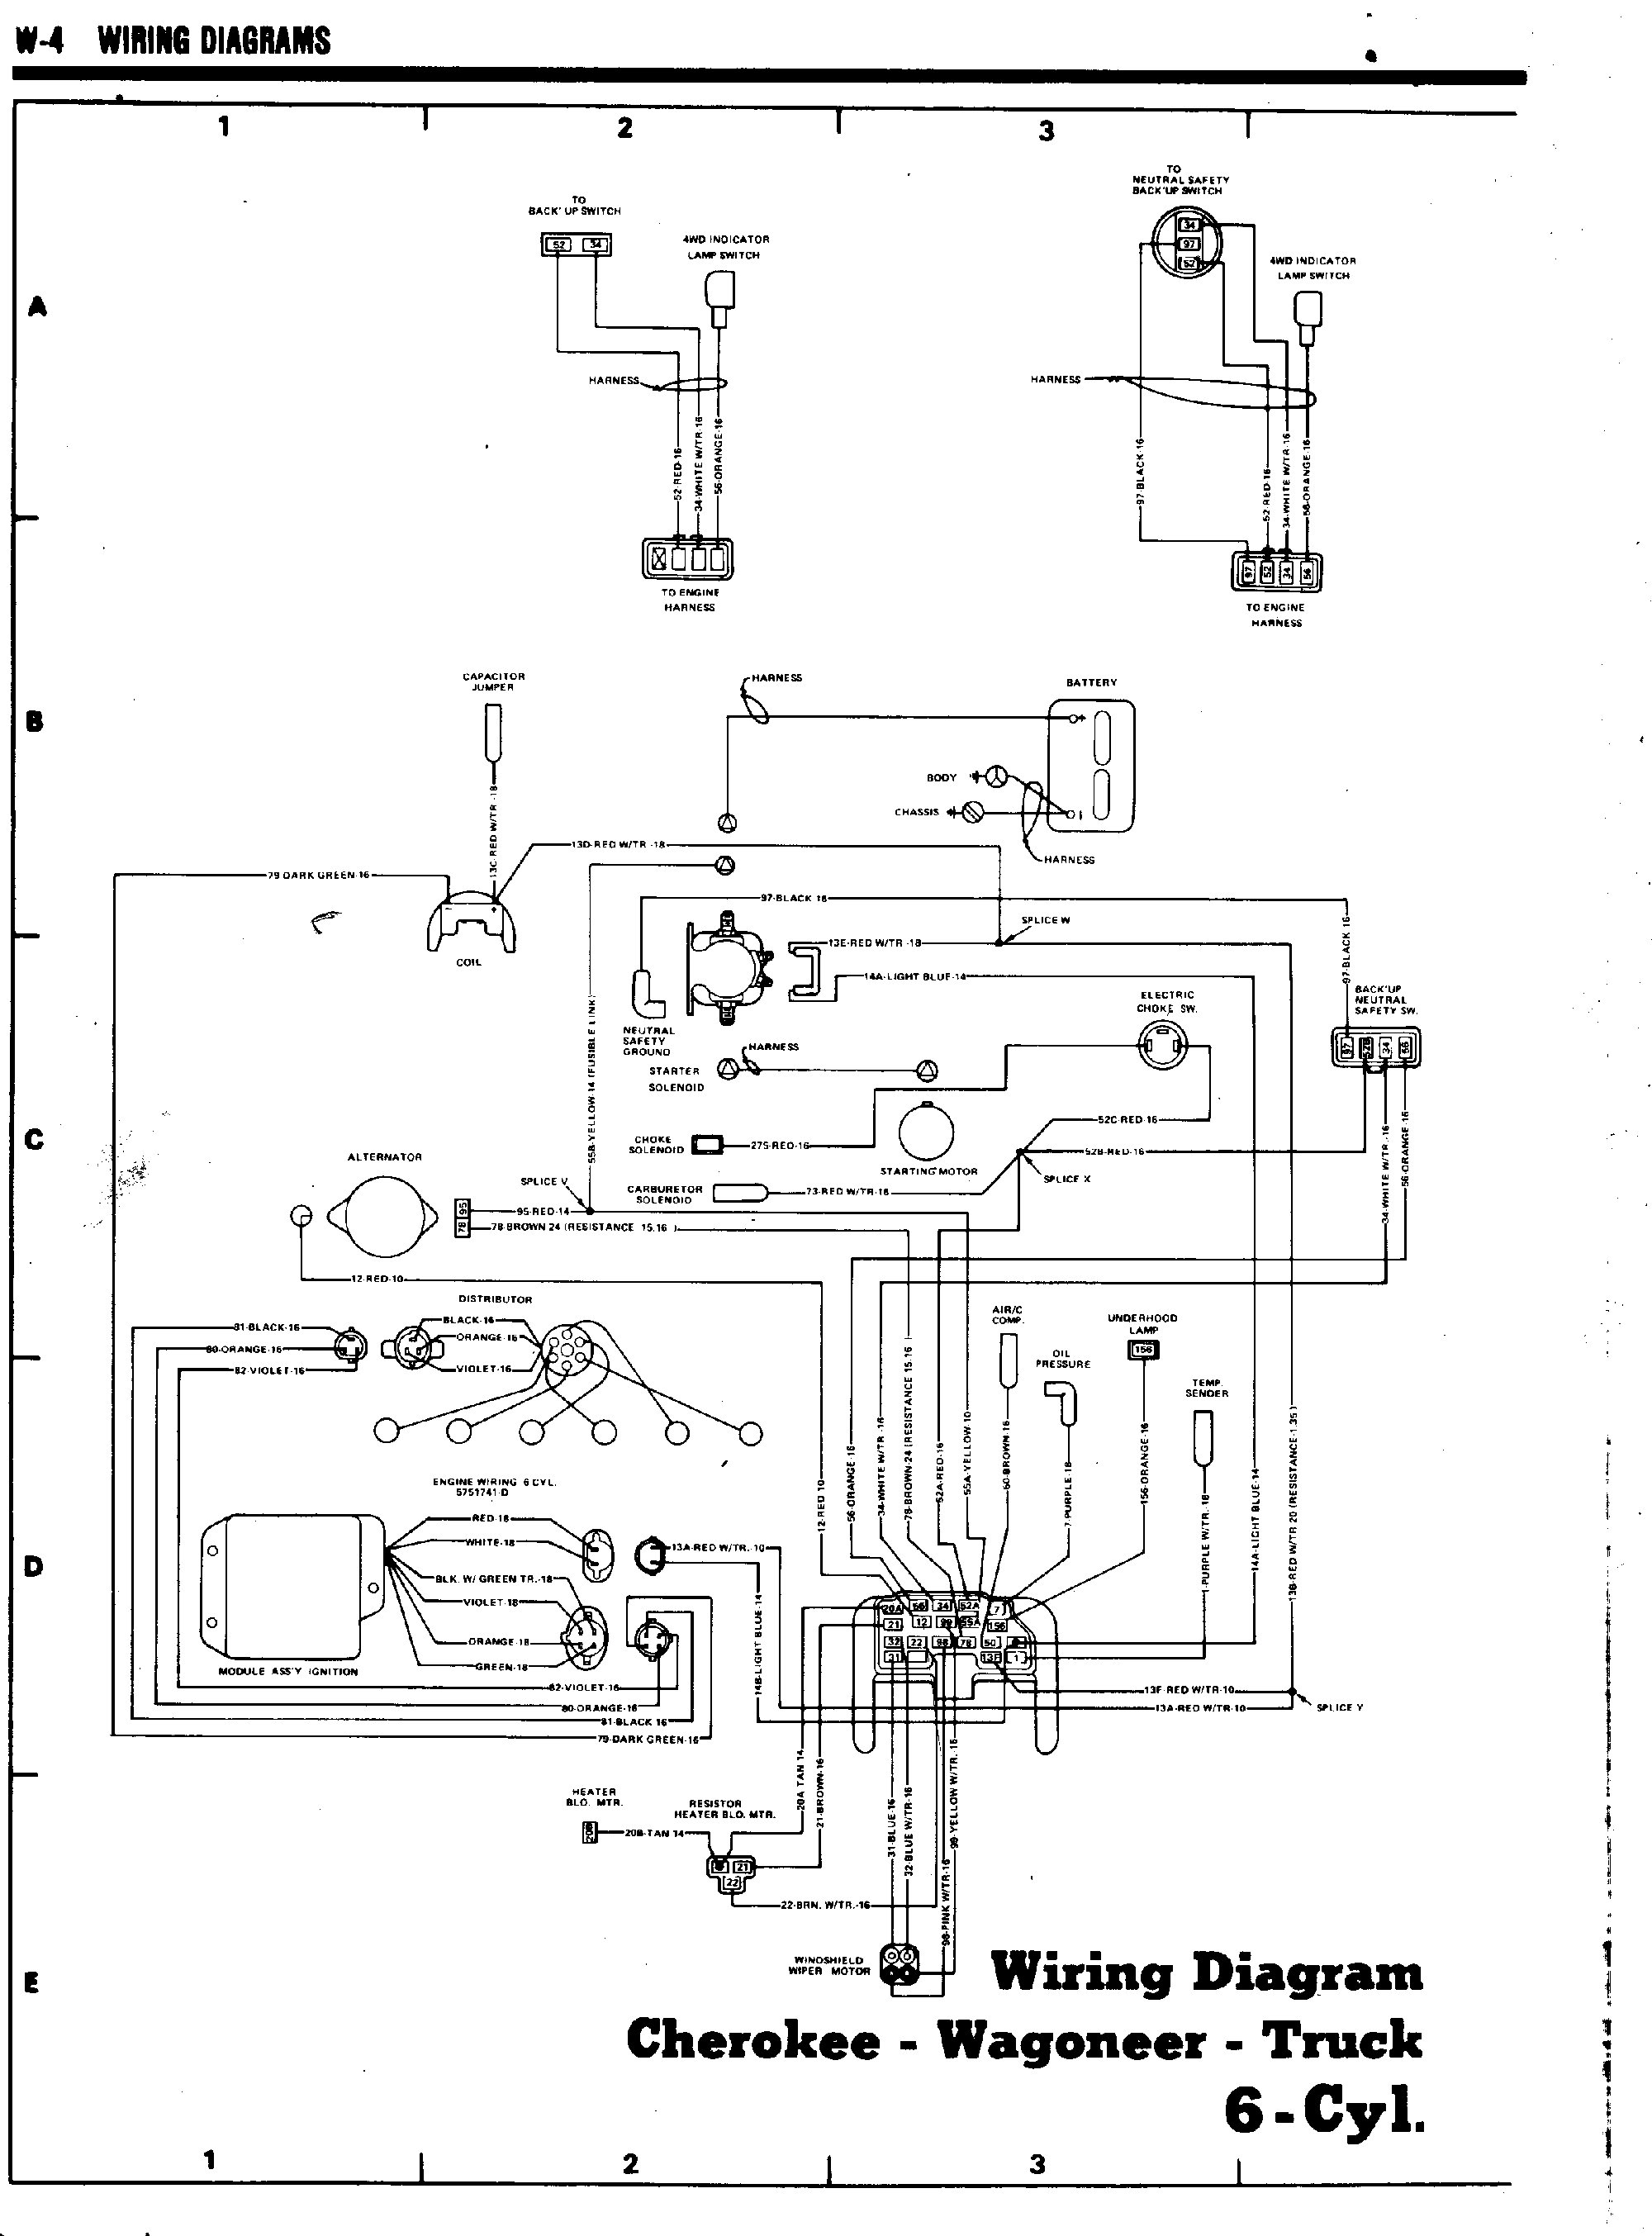 1980_cherokee_wagoneer_truck_6cyl_pg1 tom 'oljeep' collins fsj wiring page 1978 Corvette Wiring Diagram at webbmarketing.co